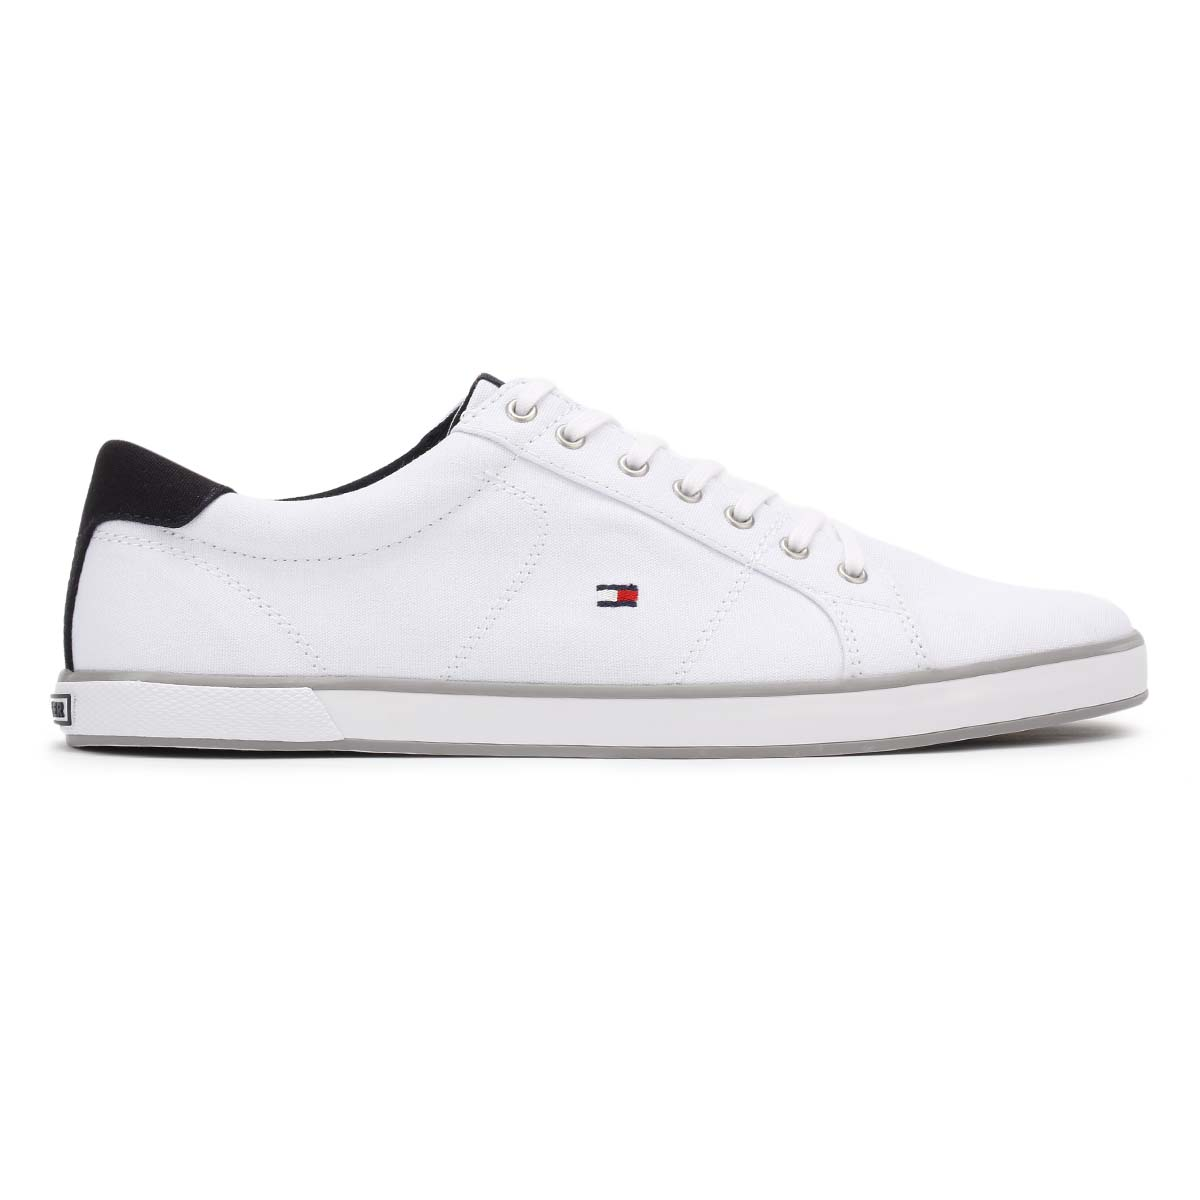 Womens Shoes Tommy Hilfiger